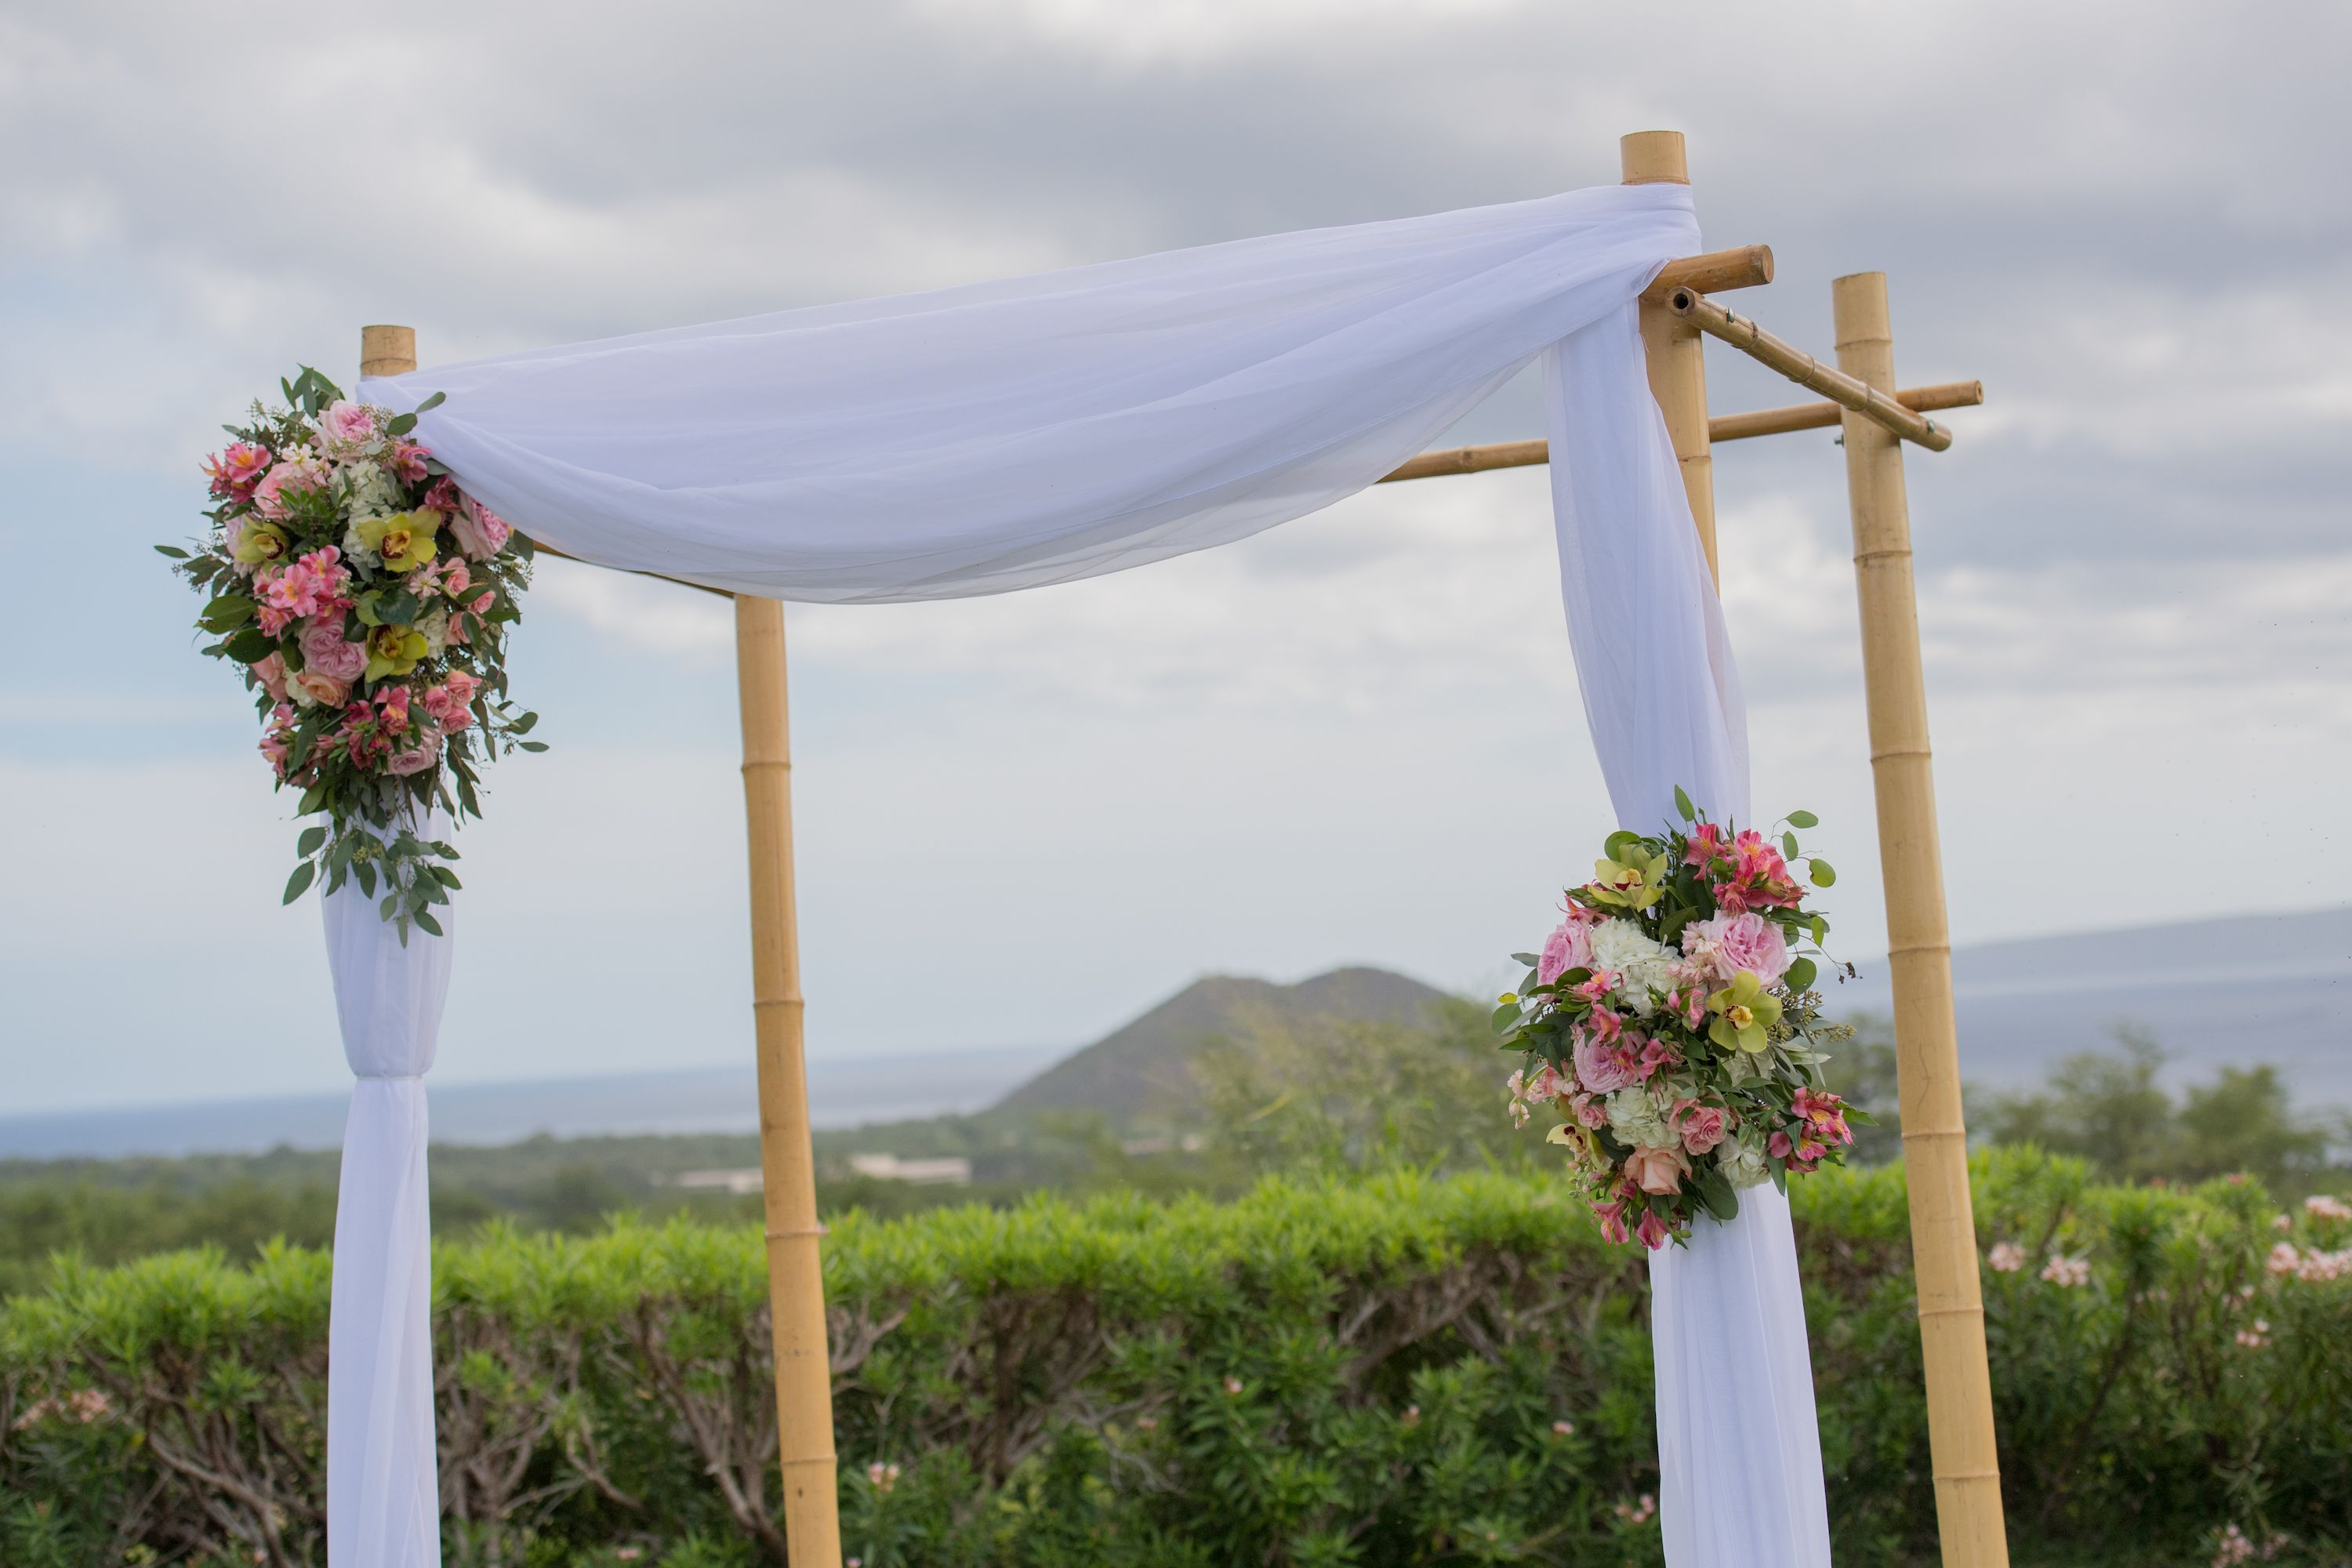 Wedding Canopy Floral Arrangements With Roses Cymbidium Orchids